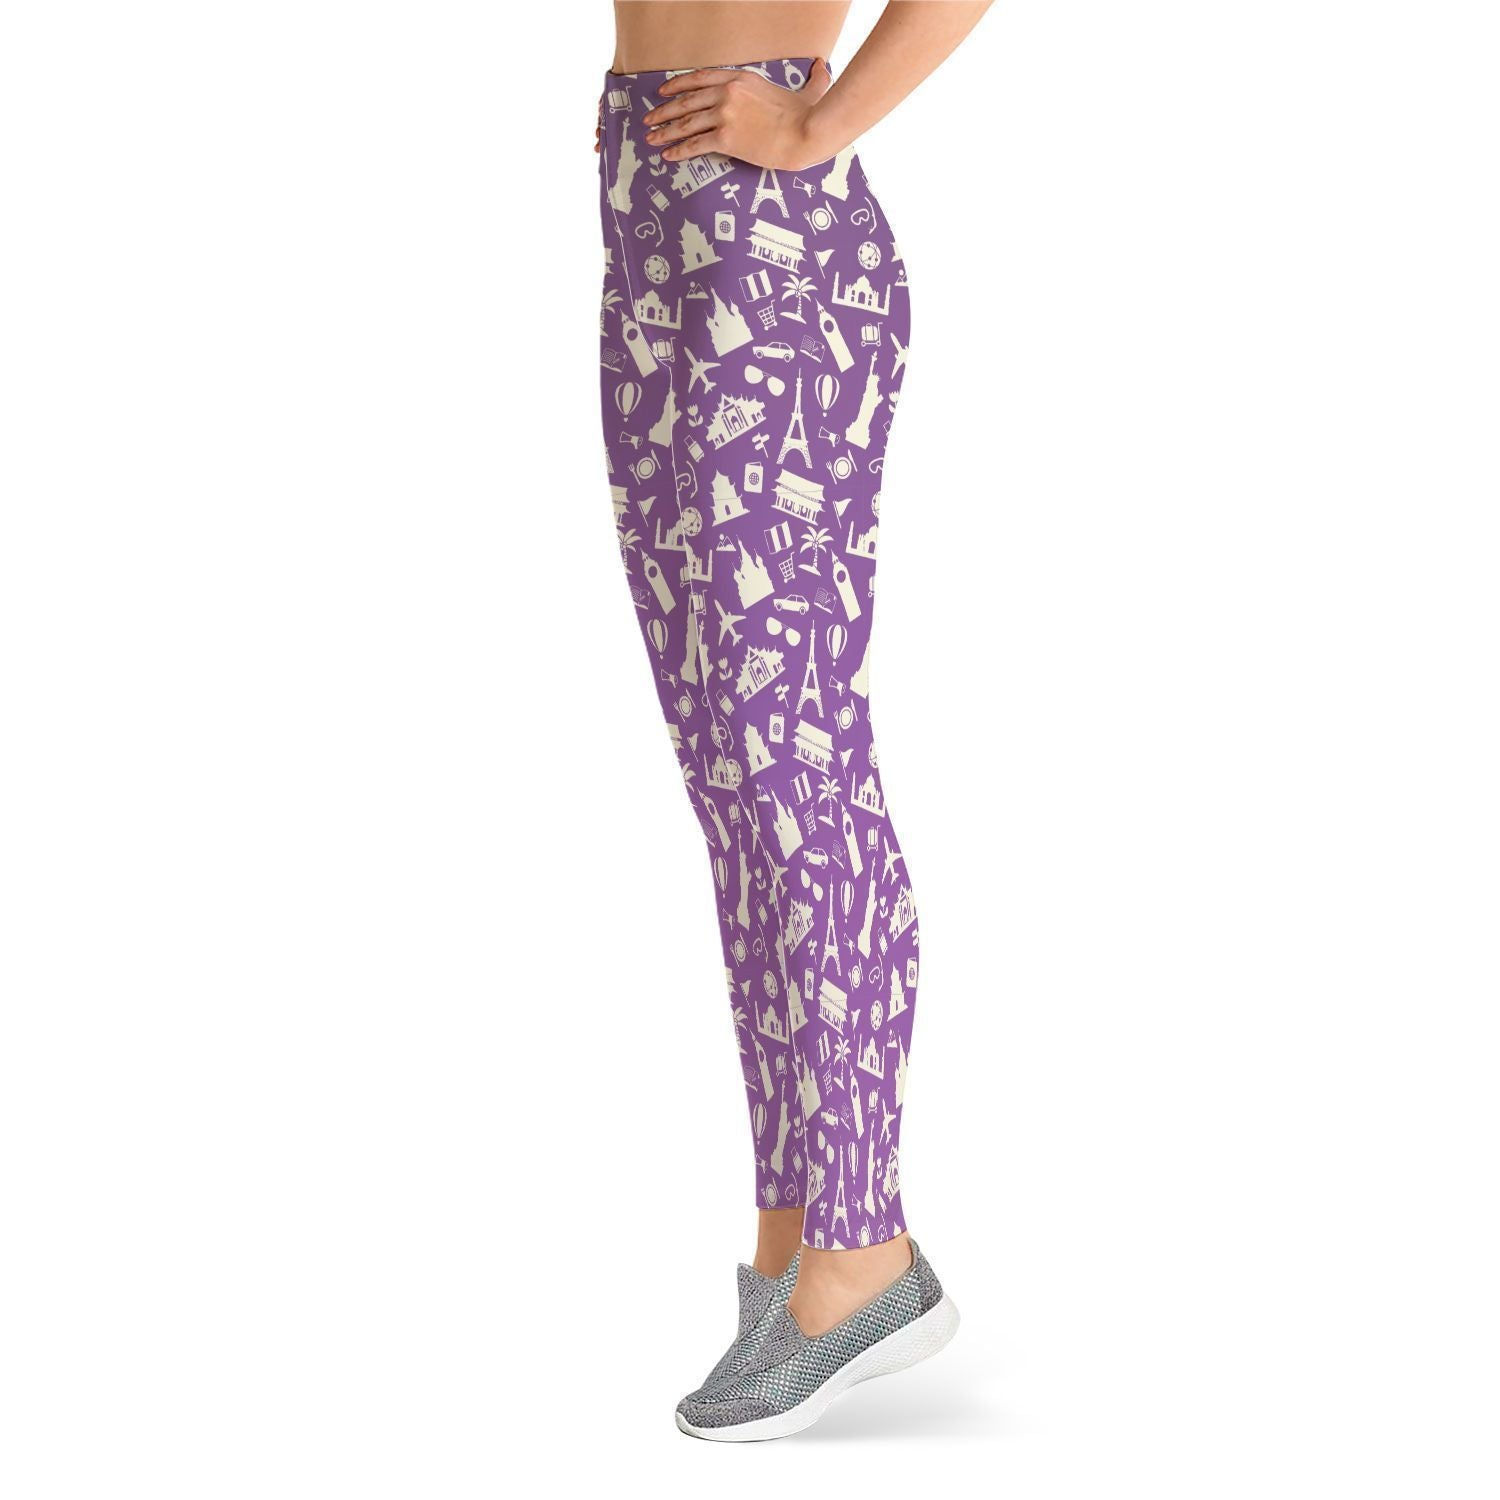 Fashion Leggings - Fashion Leggings - The Globe Trotter's Choice